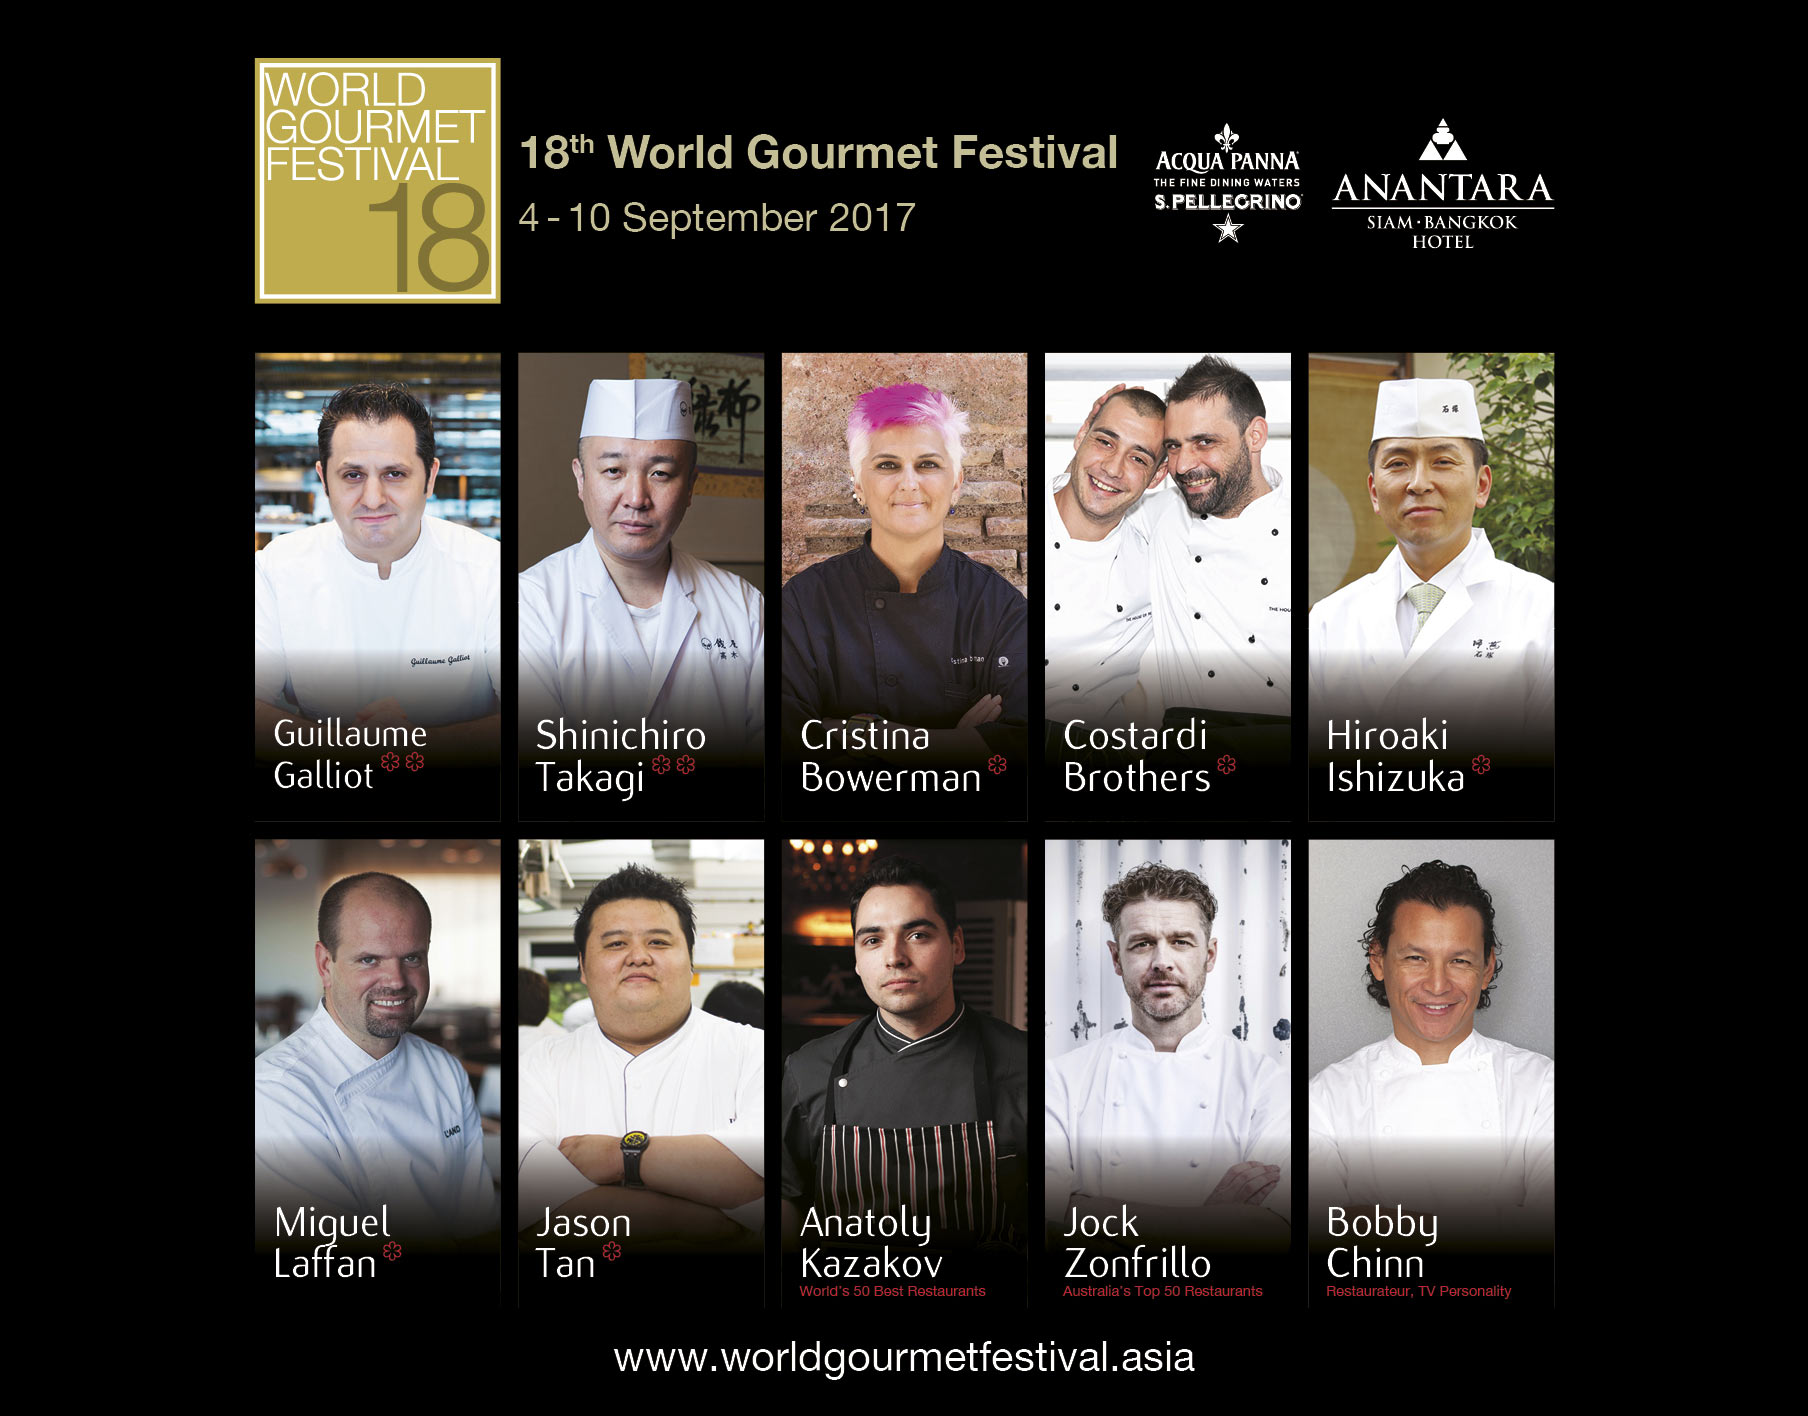 World Gourmet Festival 2017.